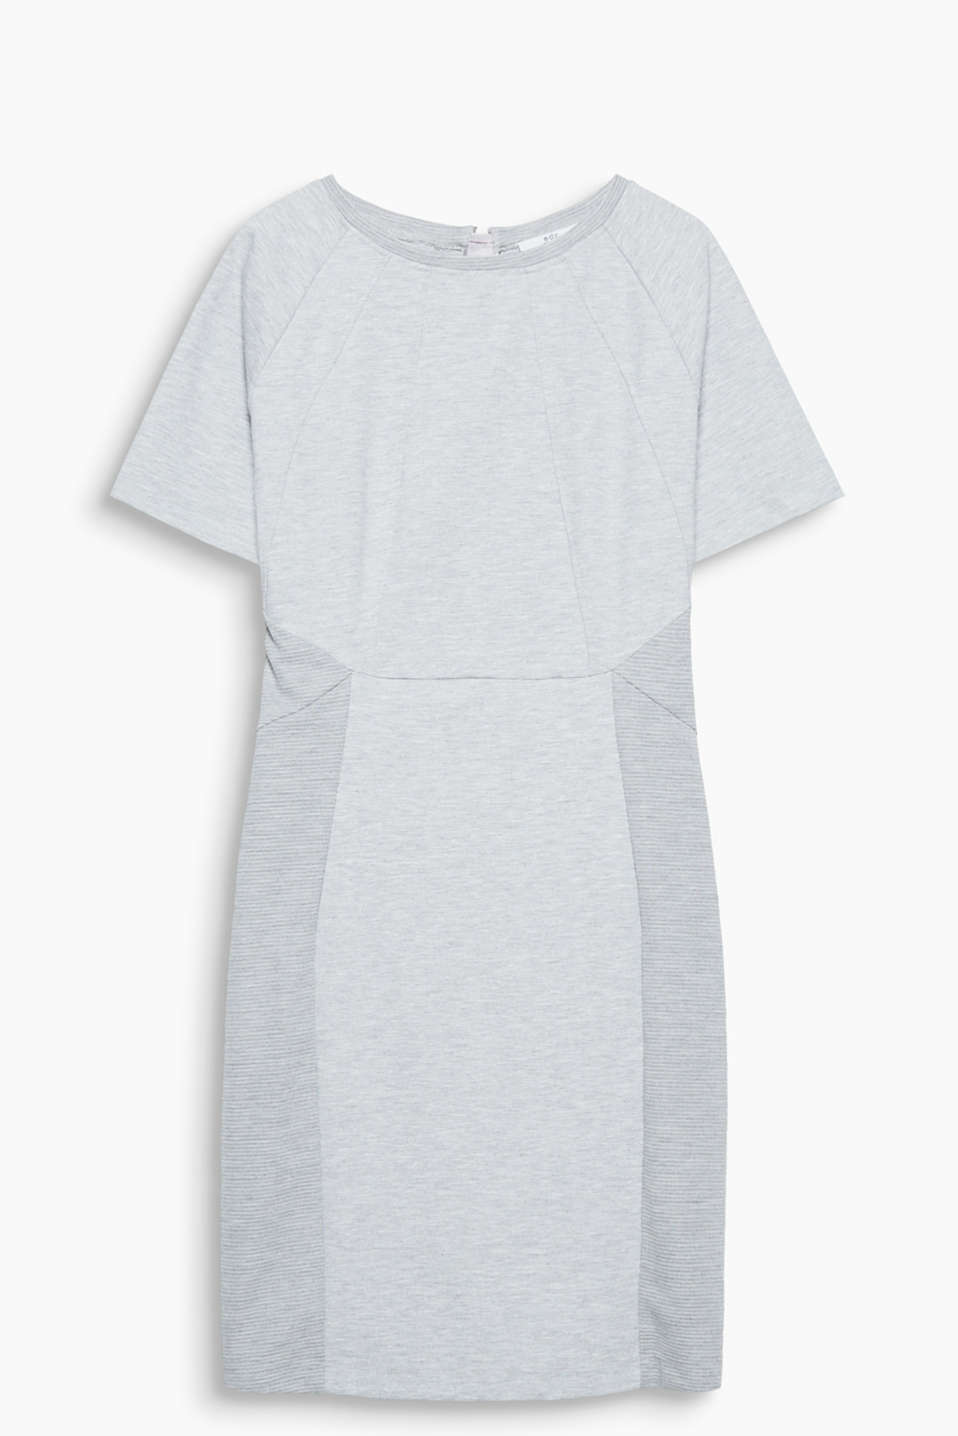 Sheath dress in soft jersey with raglan sleeves and a distinctive zip at the back